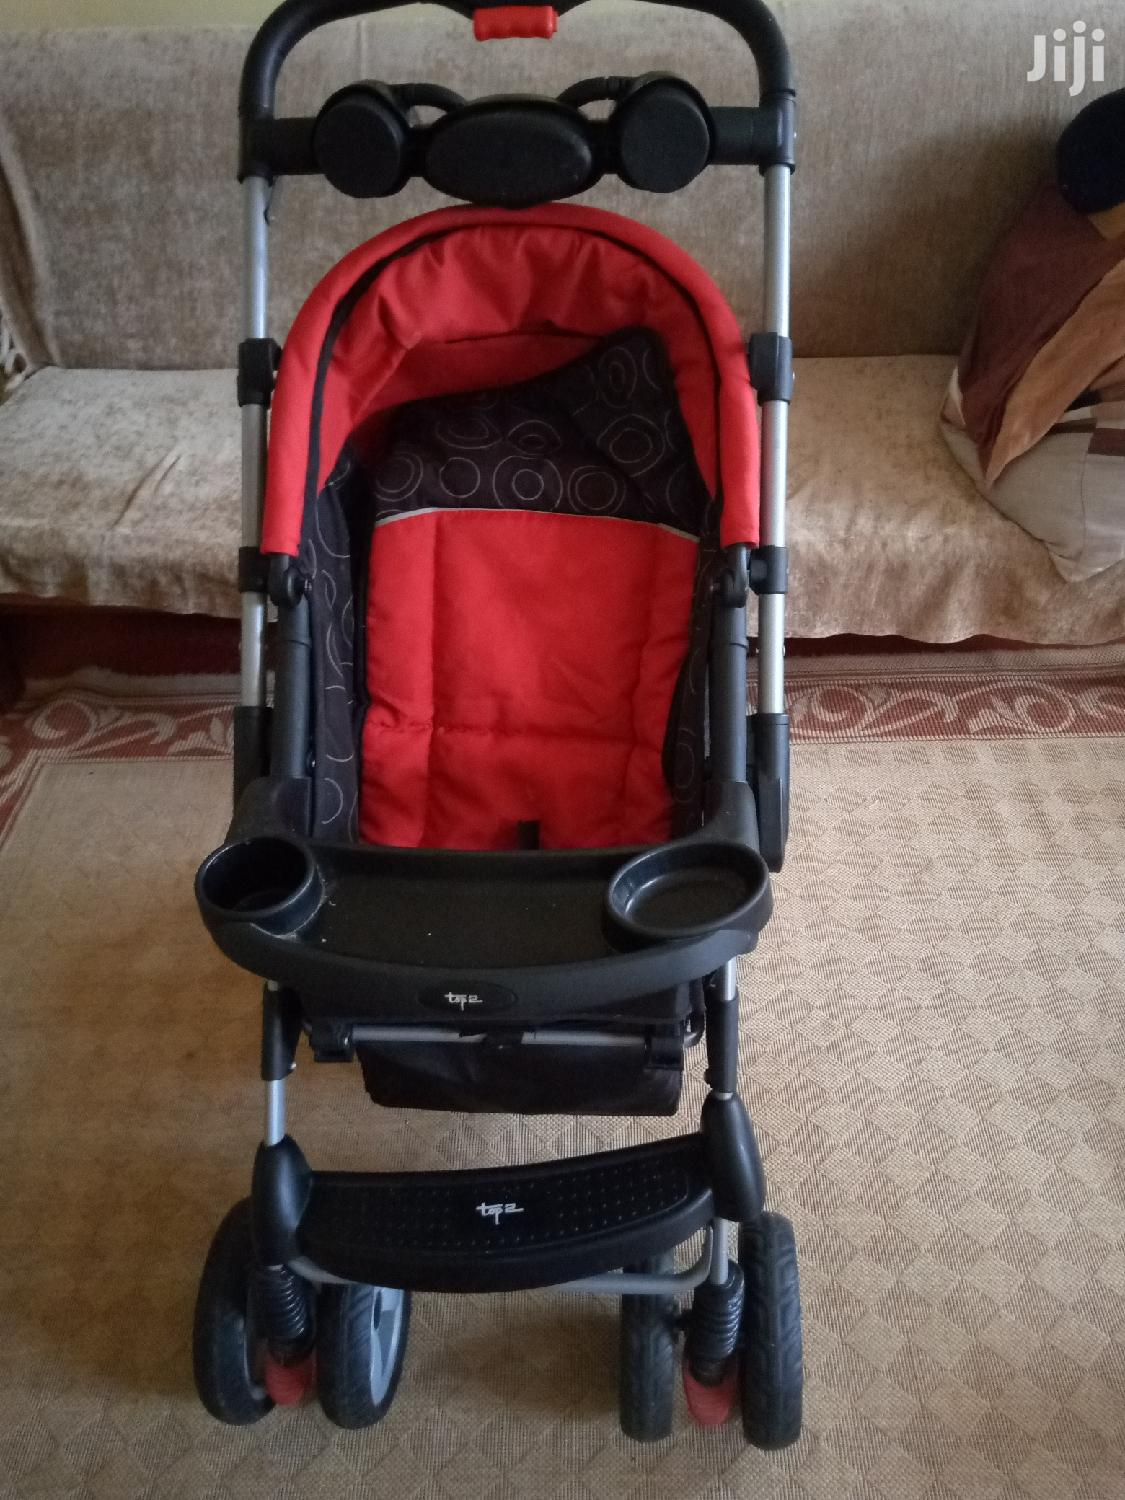 Archive: Generic Superior 3 In 1 Value Pack Baby Stroller Set